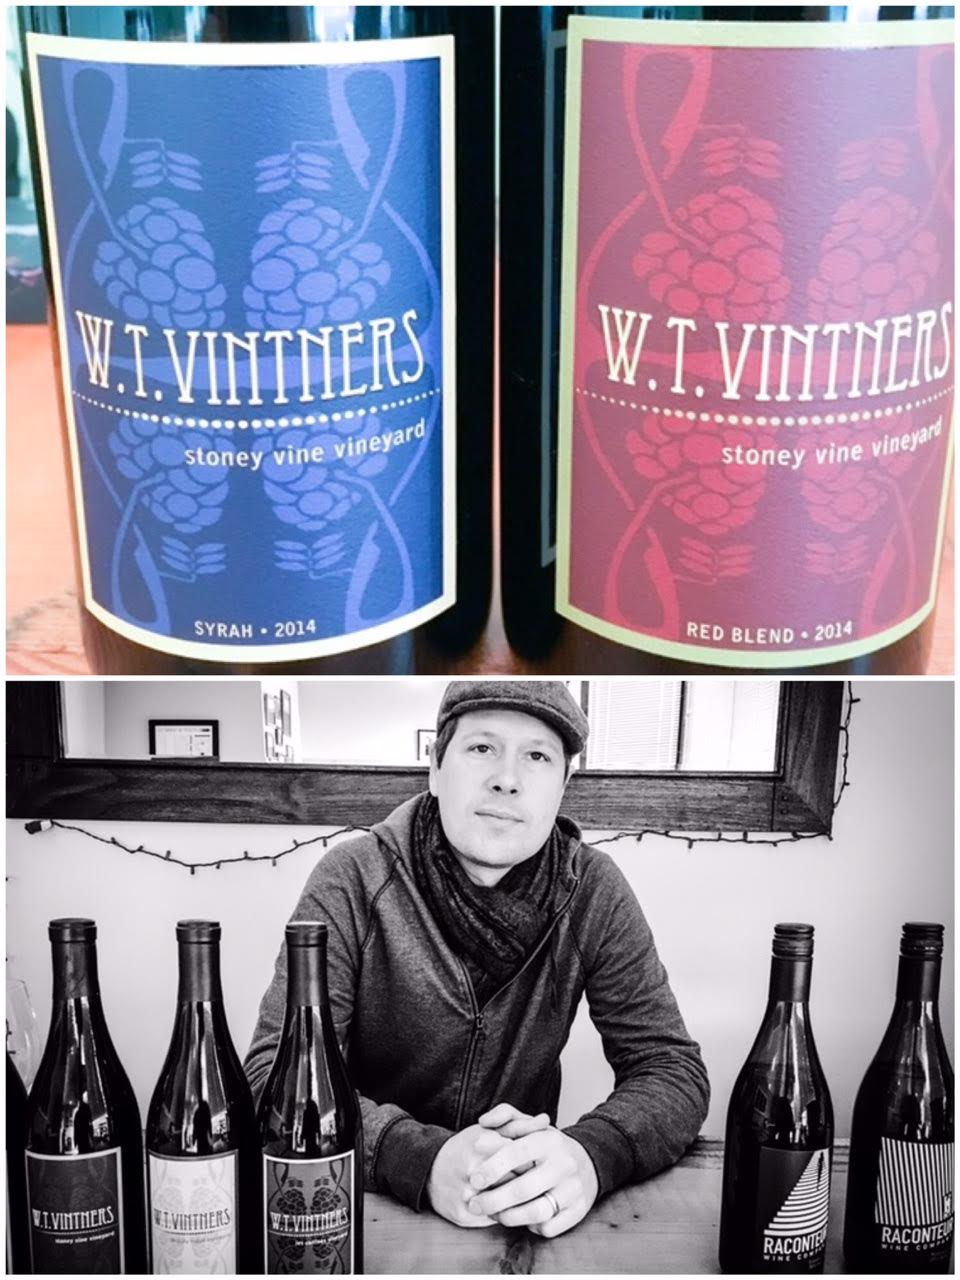 Killer photo here of superstar winemaker Jeff Lindsay-Thorsen of W.T. Vintners and Raconteur Wine Co.